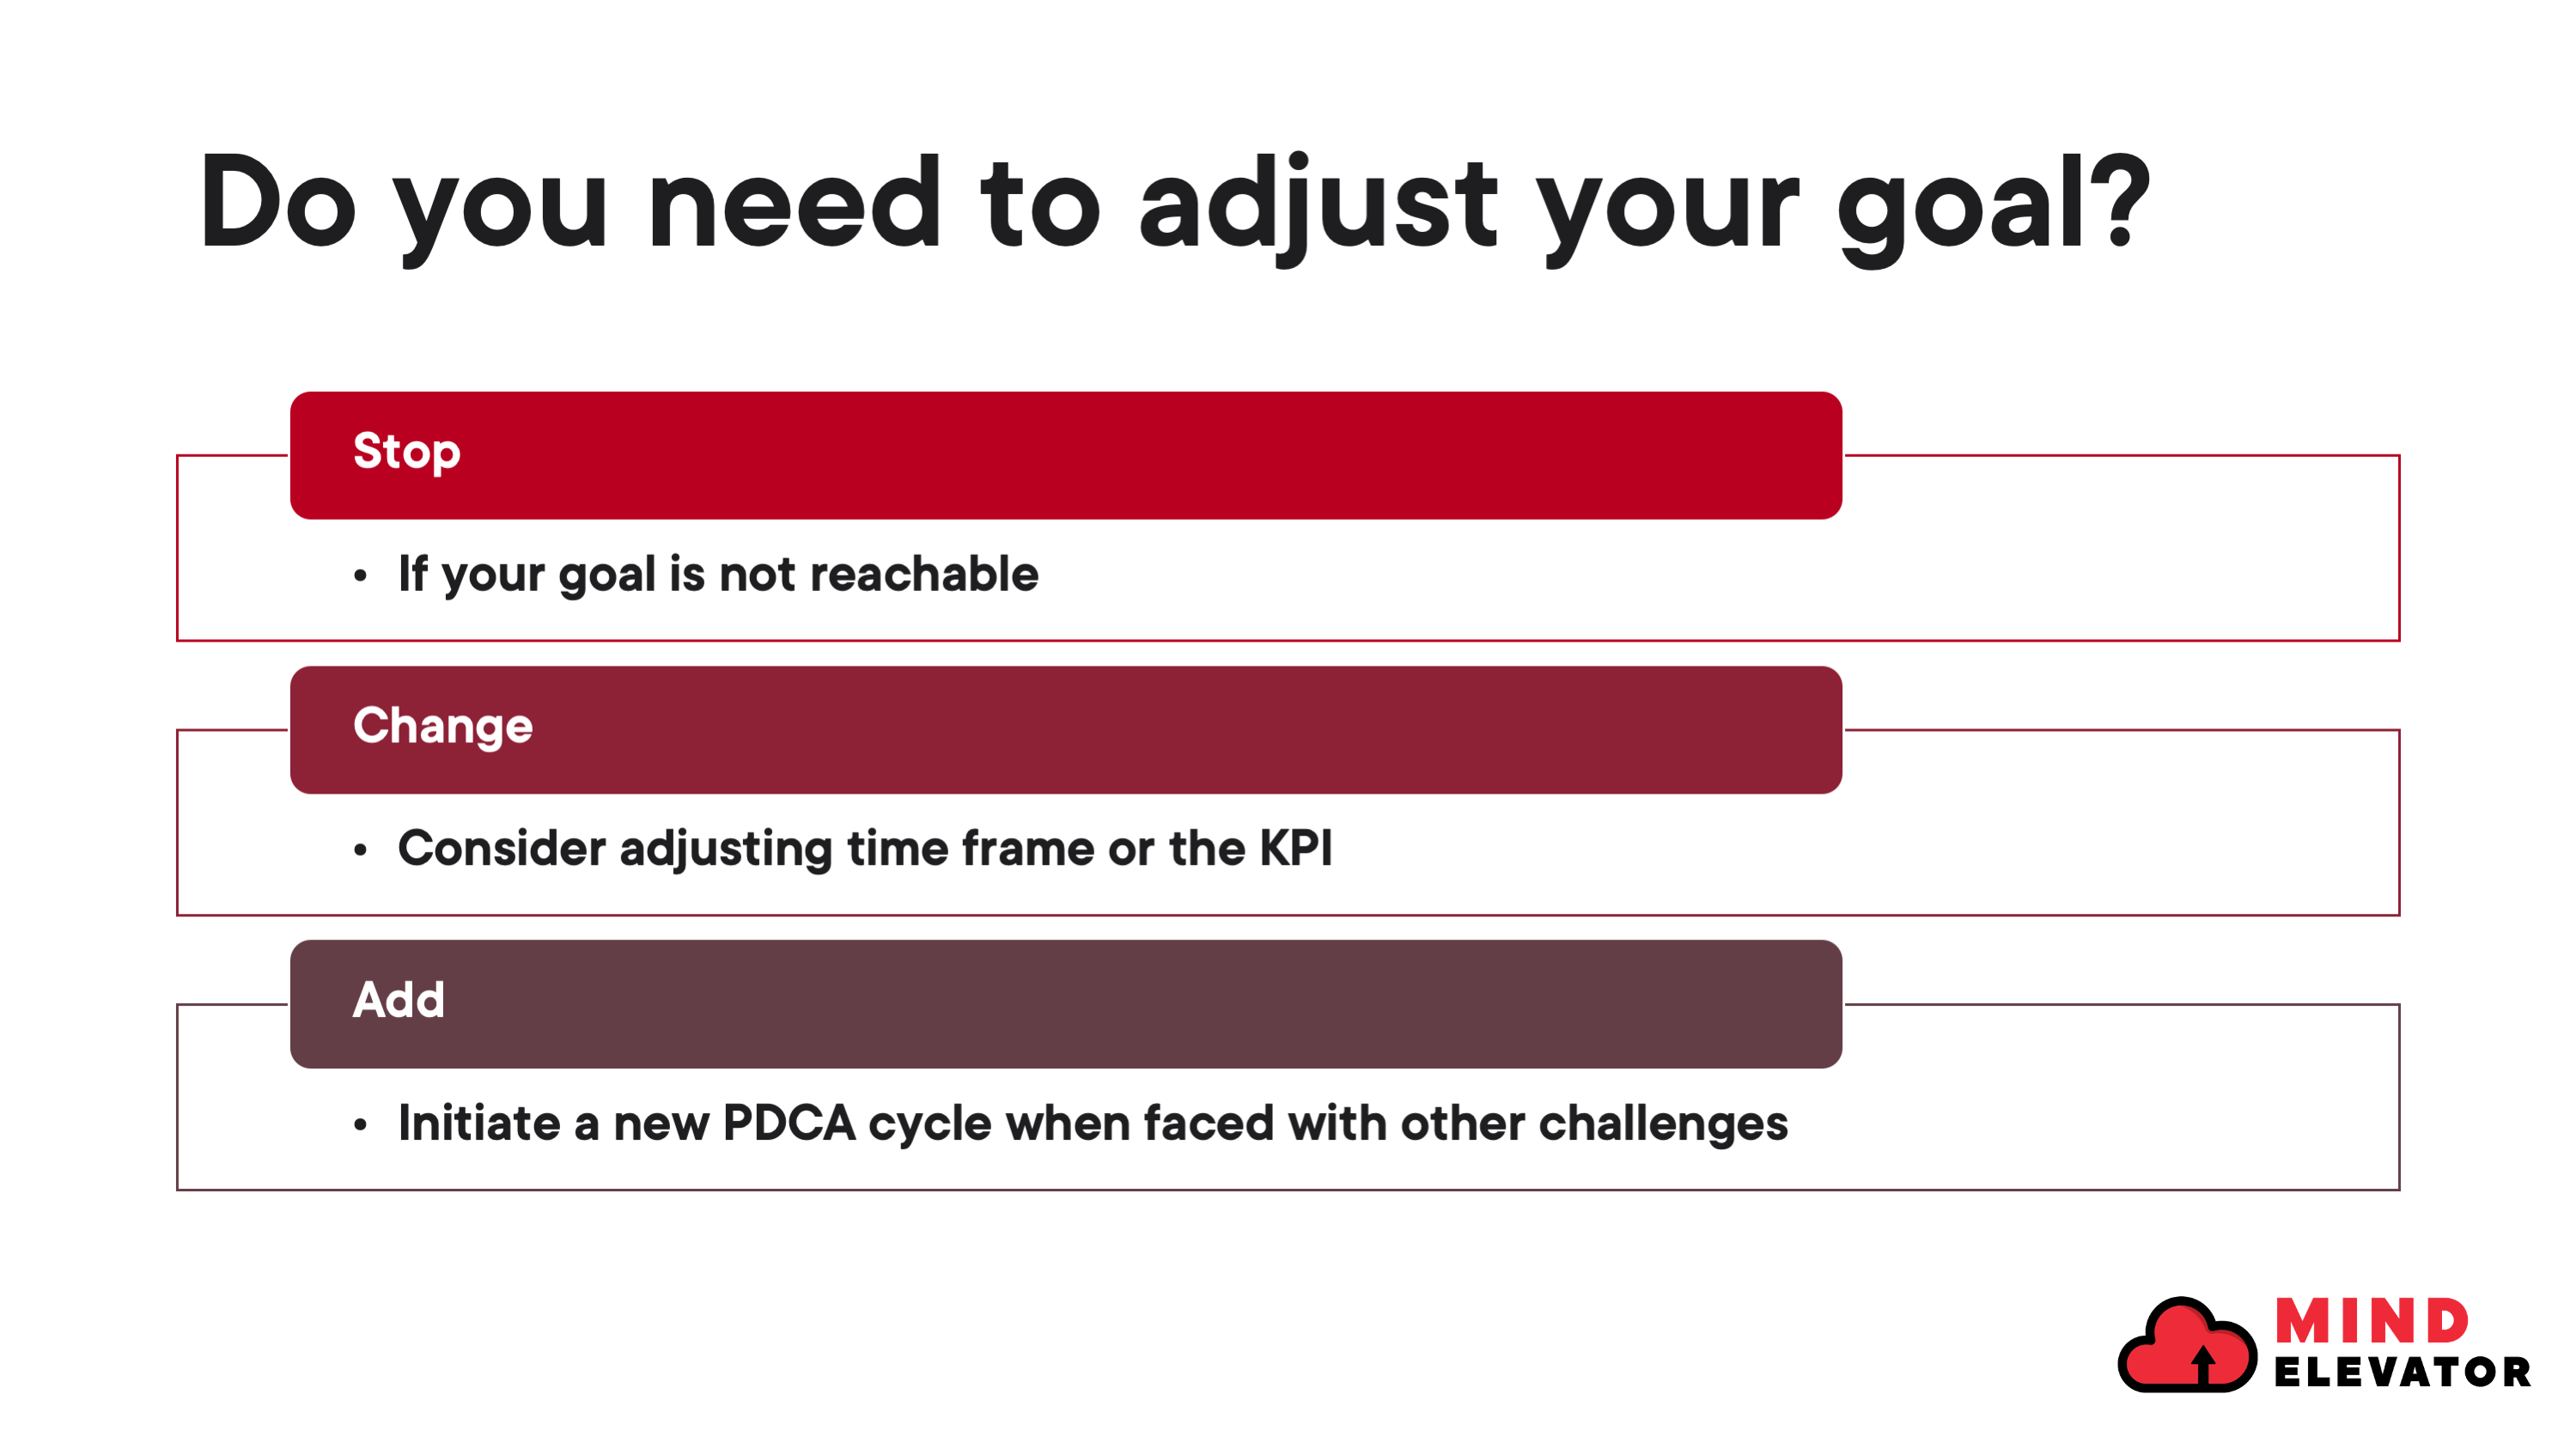 Three actions to think about when adjusting your goals under the personal PDCA